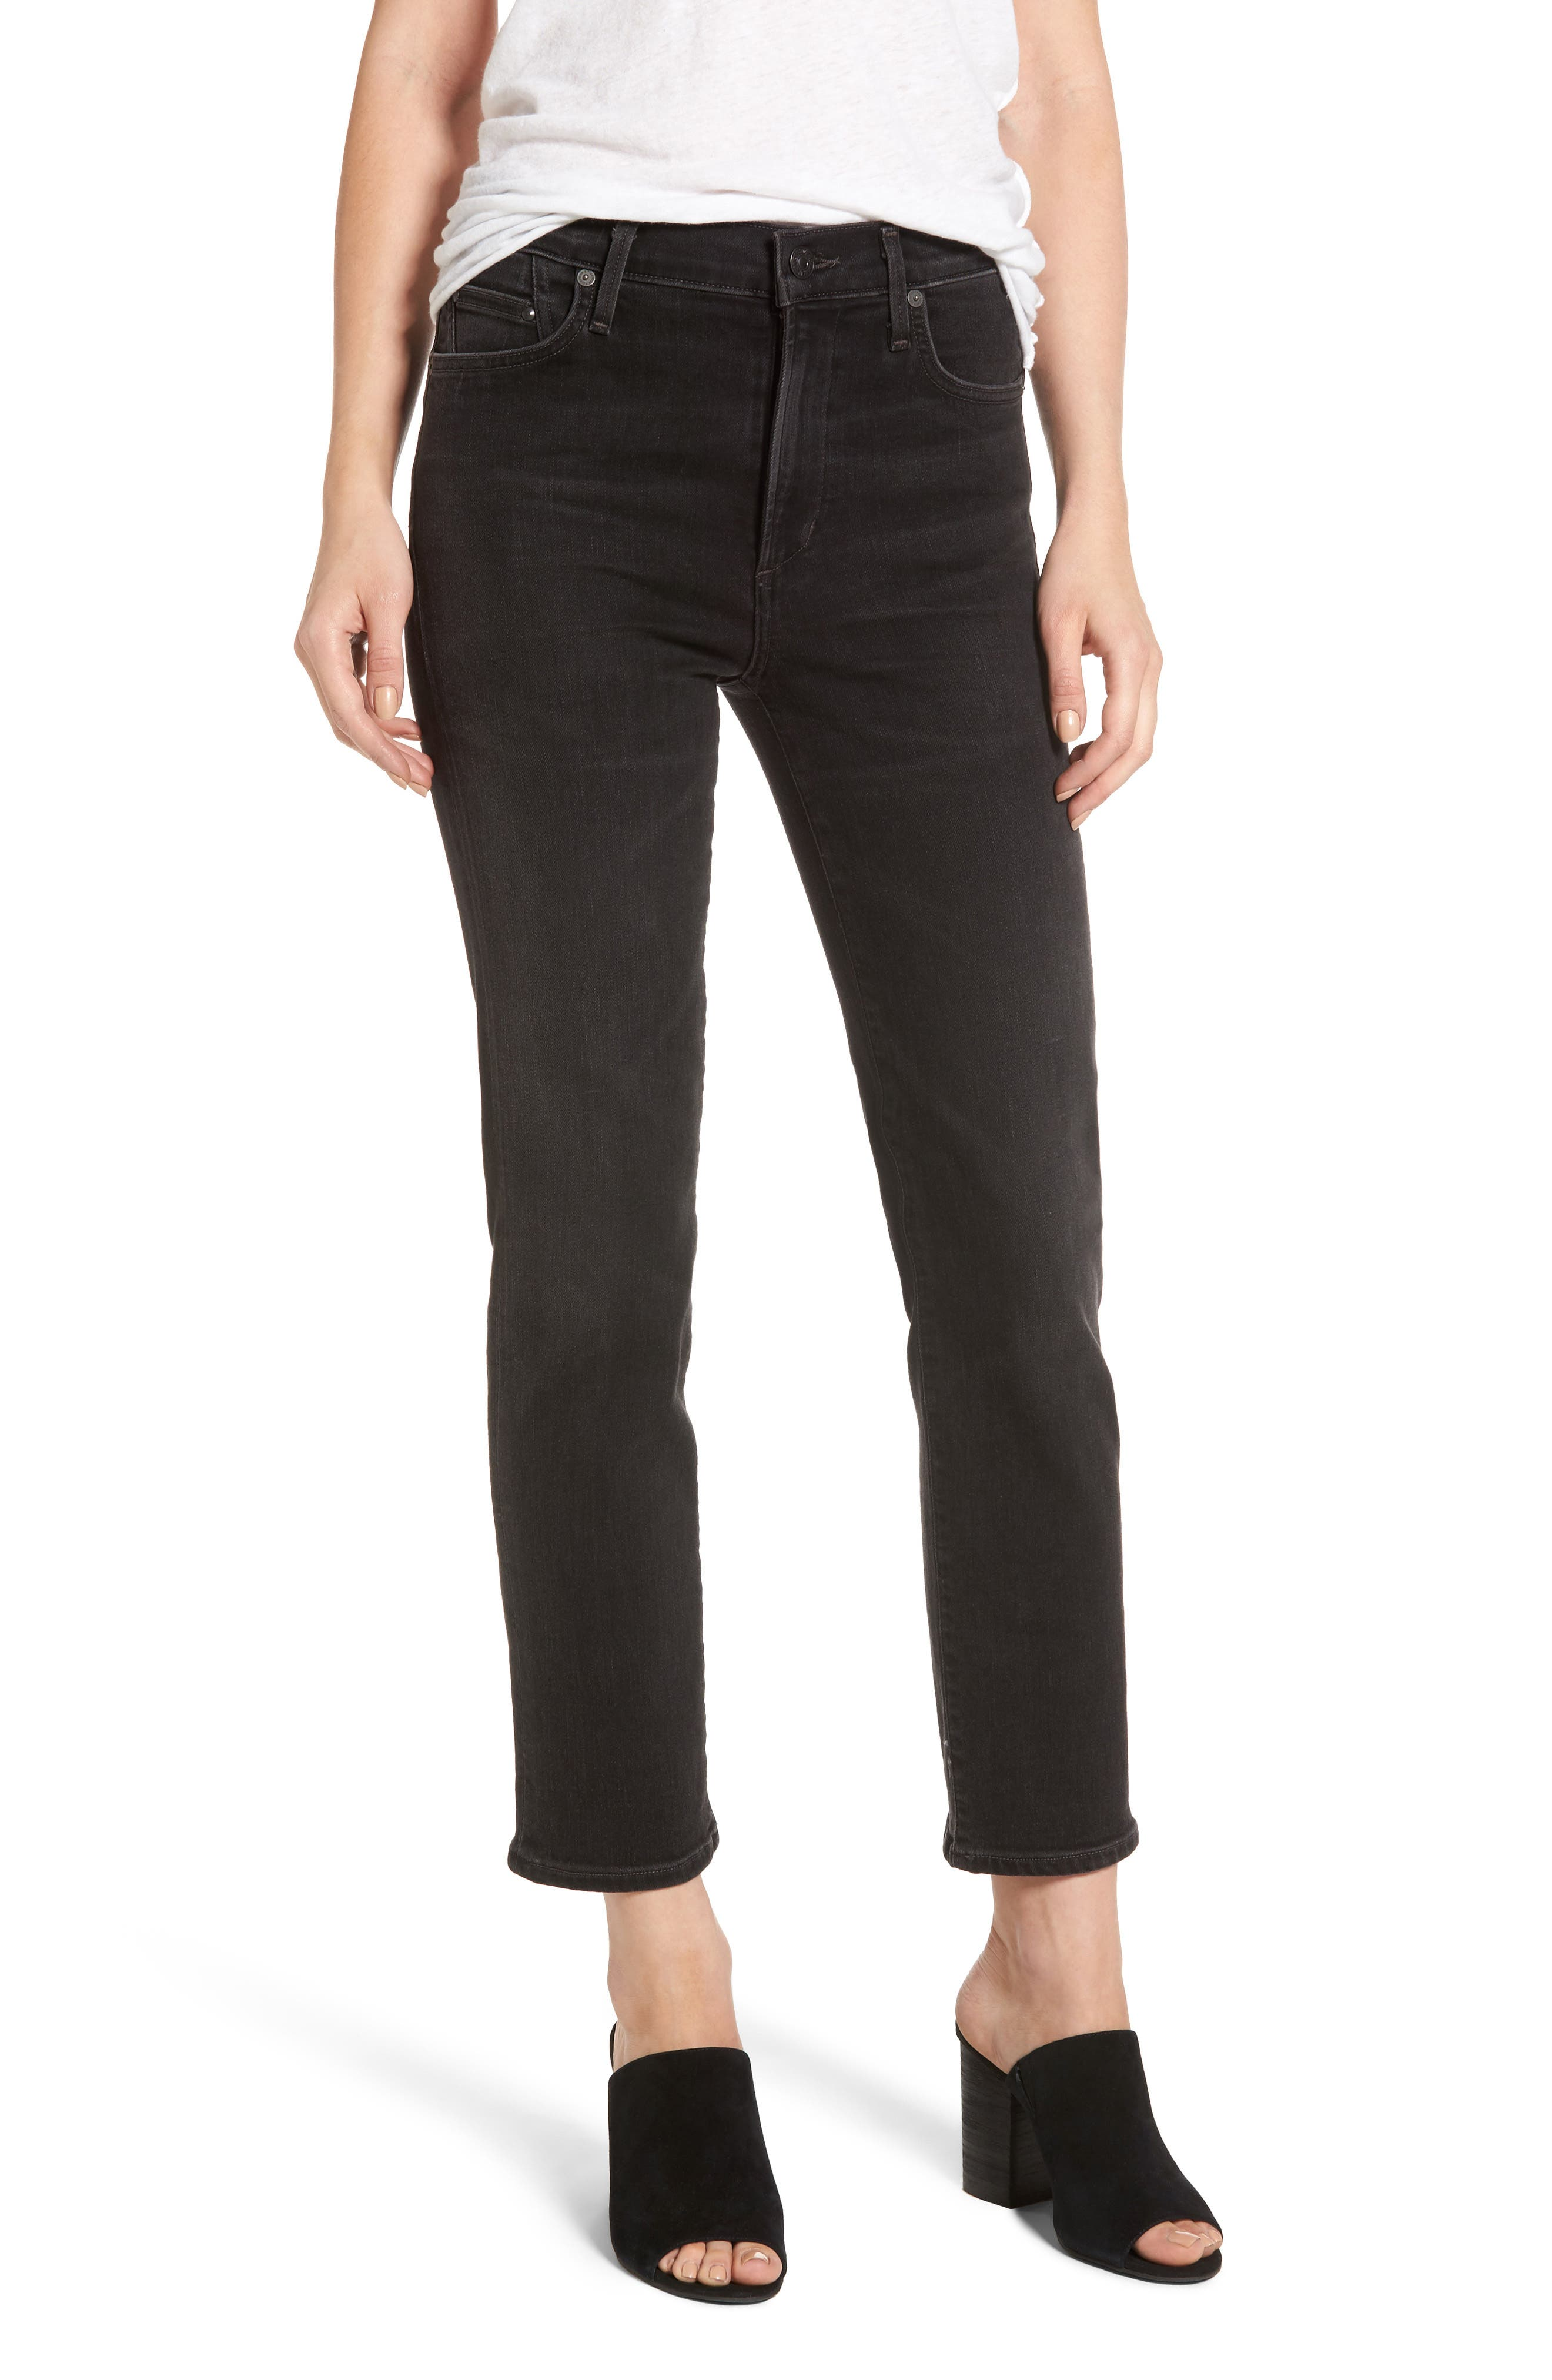 Cara Ankle Cigarette Jeans,                             Main thumbnail 1, color,                             Darkness